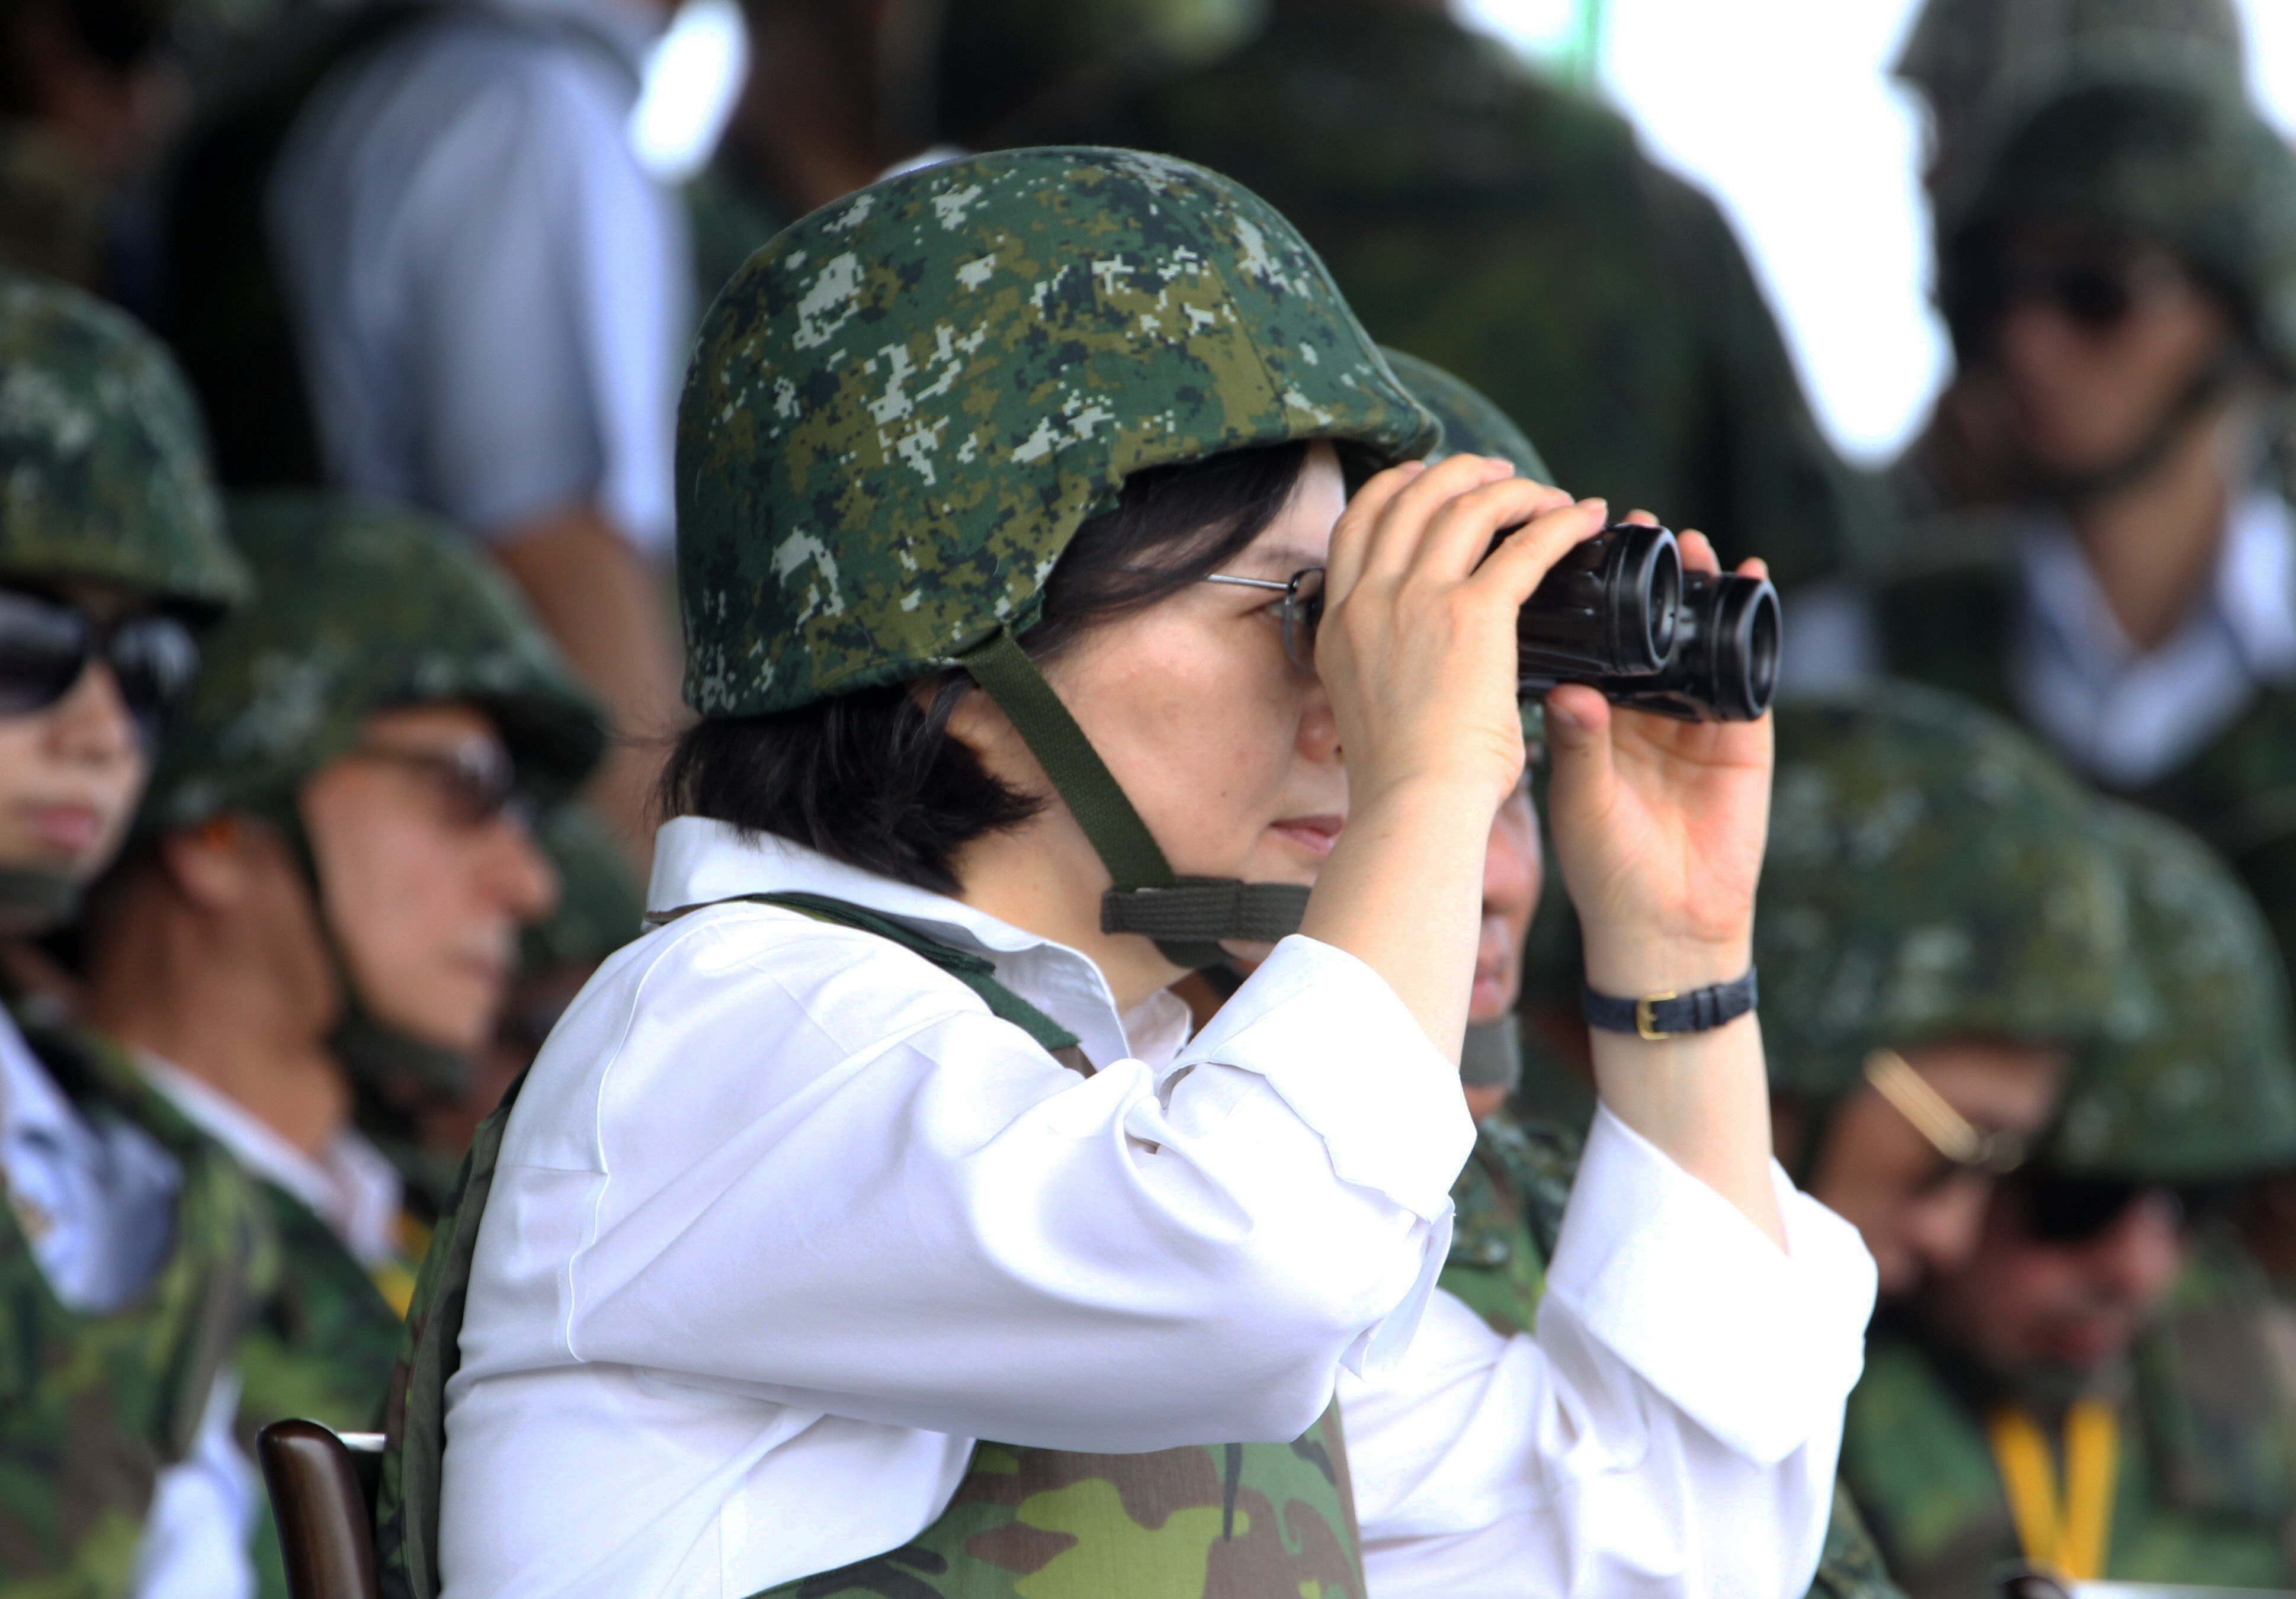 Taiwanese President Tsai Ing-wen watches an annual live-fire drill in in Taiwan on Aug. 25, 2016, amid cooling relations with Beijing